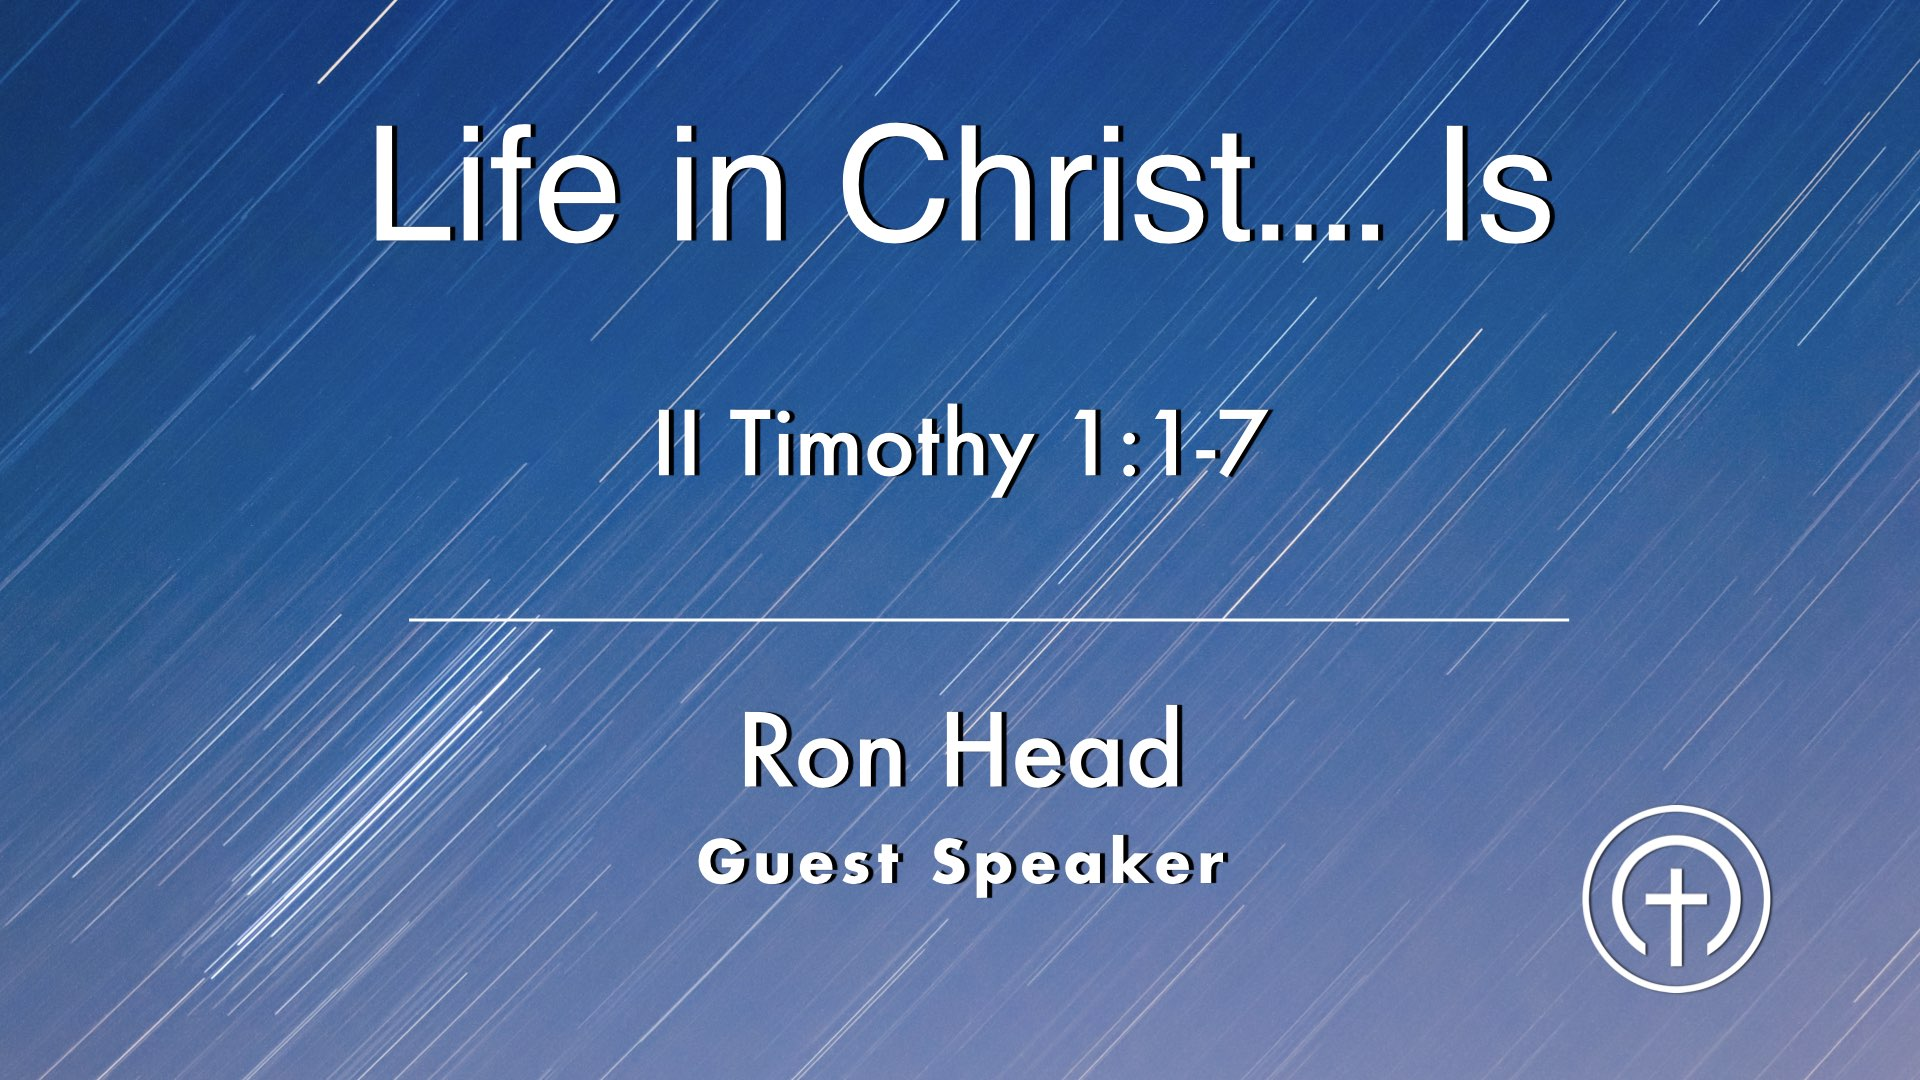 Life In Christ... Is